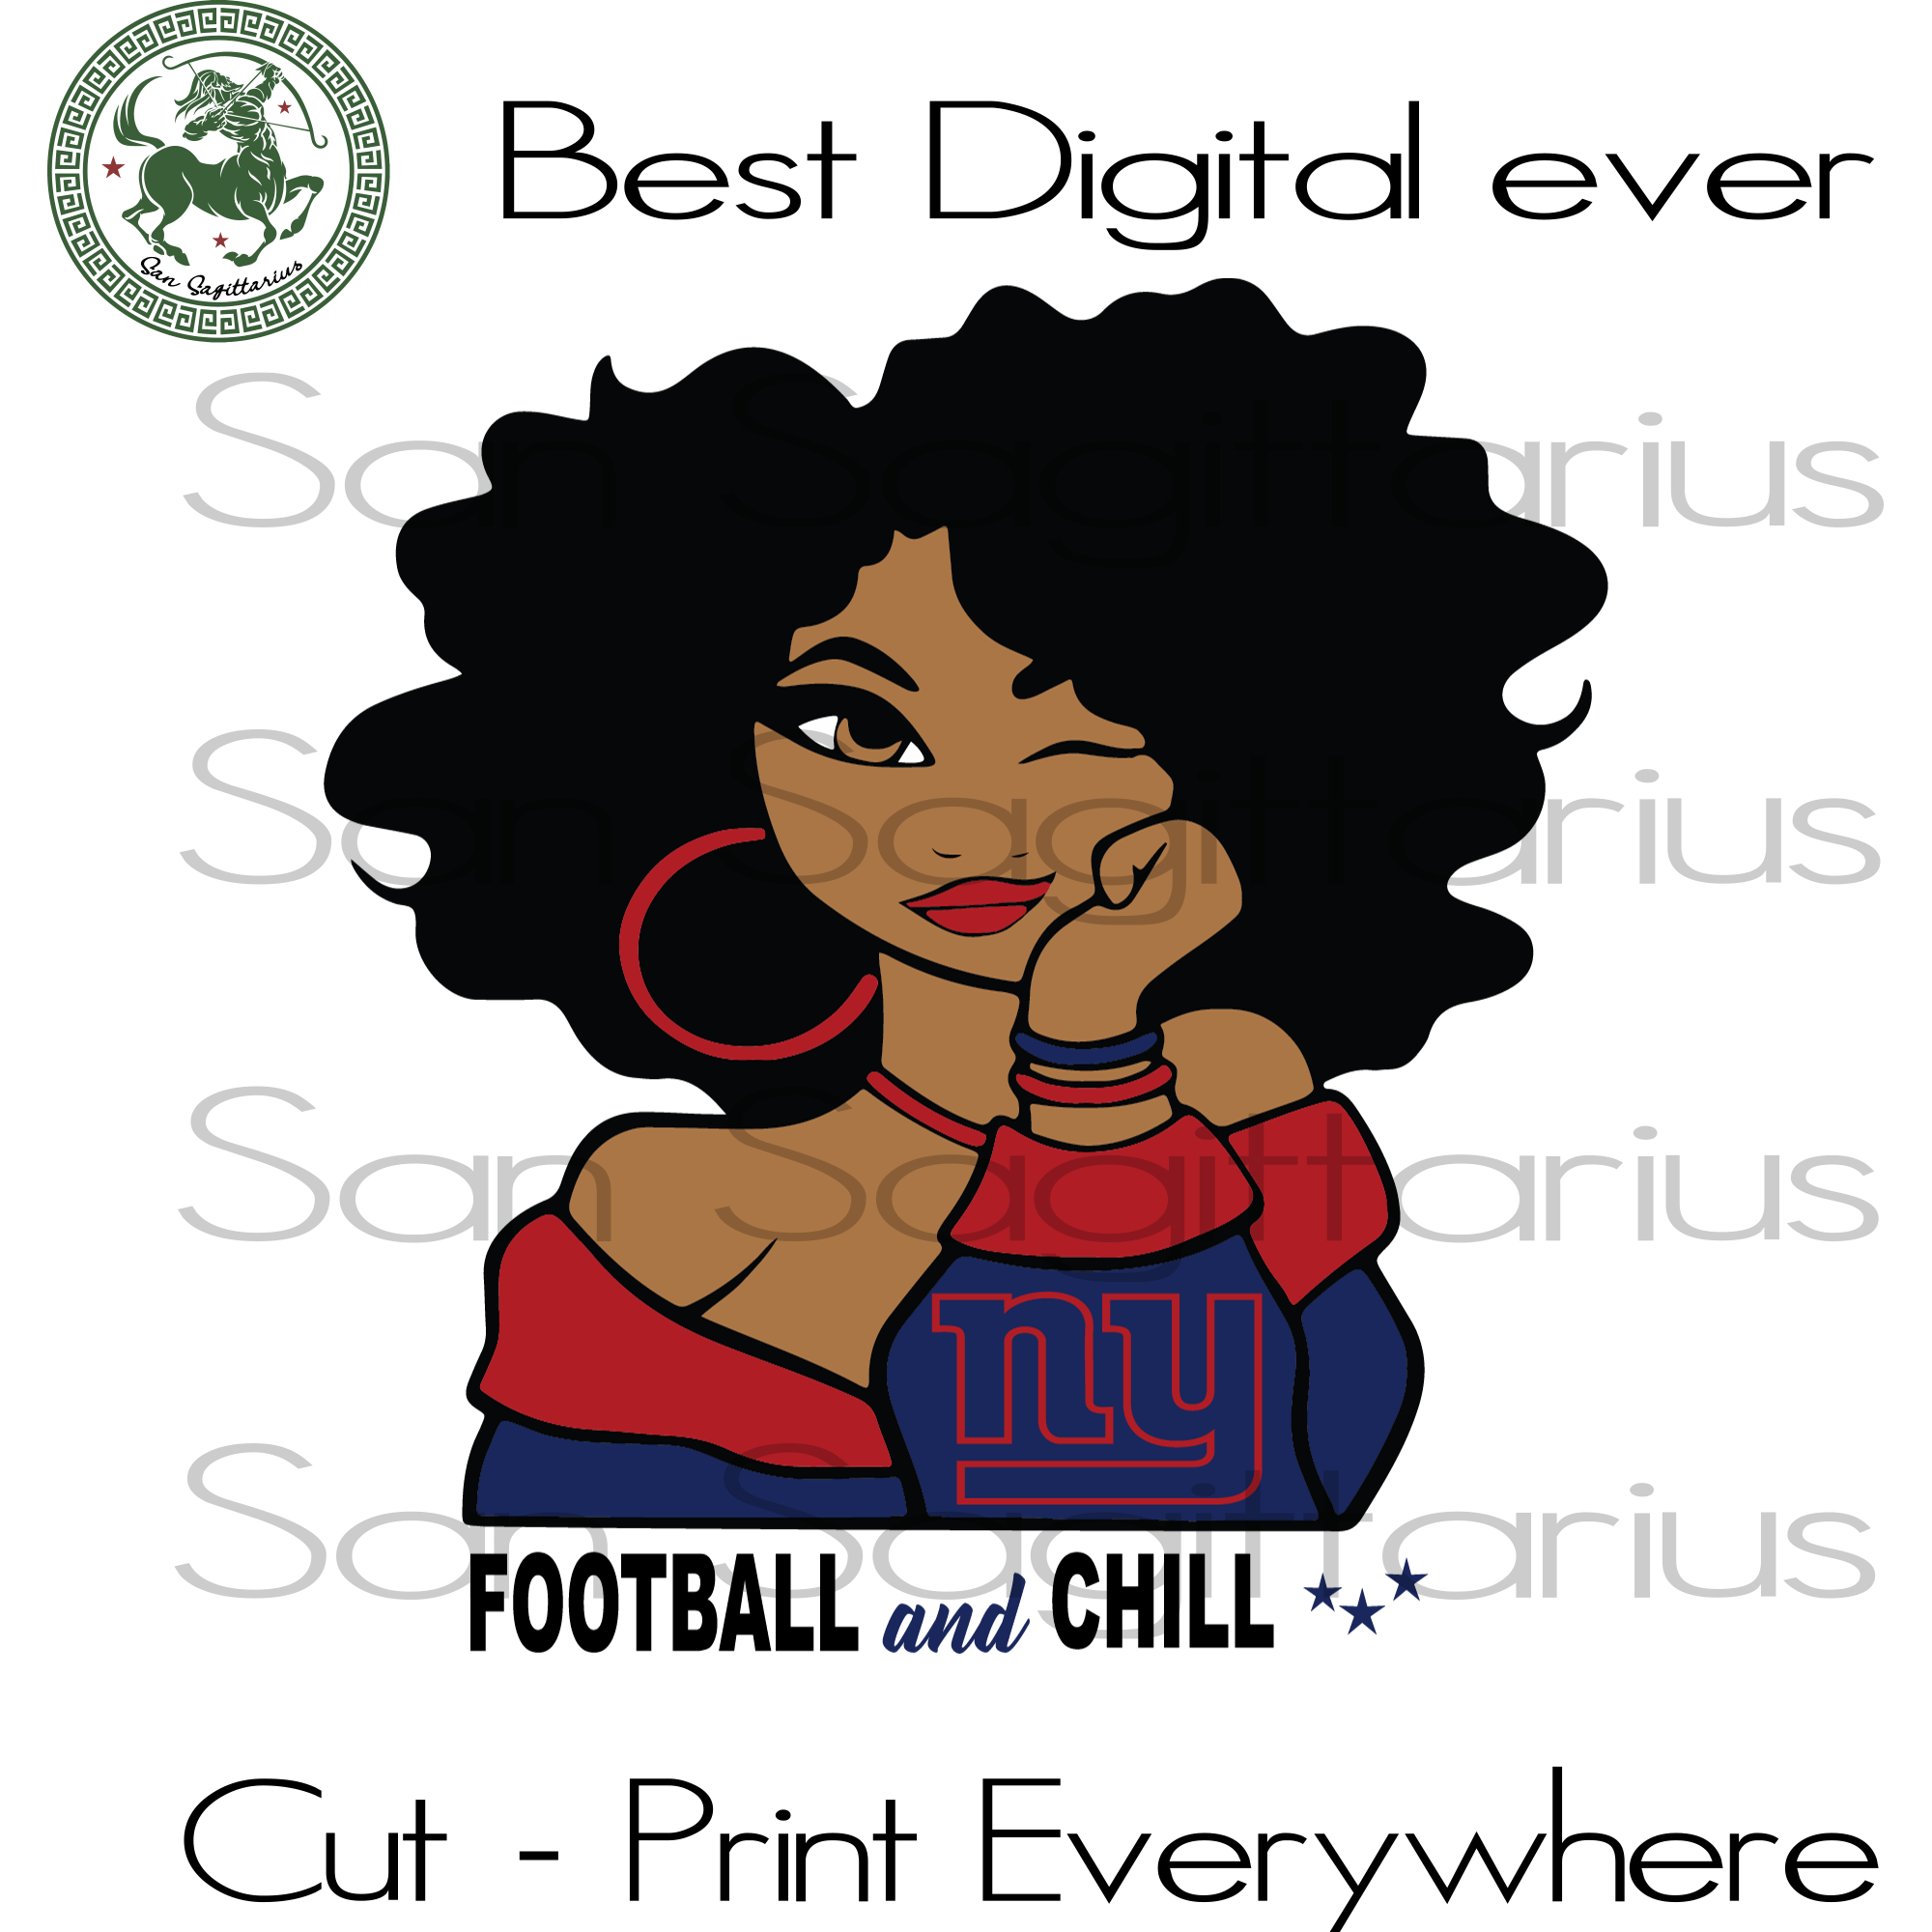 New york giants melanin  SVG Files For Silhouette, Cricut Files, SVG DXF EPS PNG Instant Download